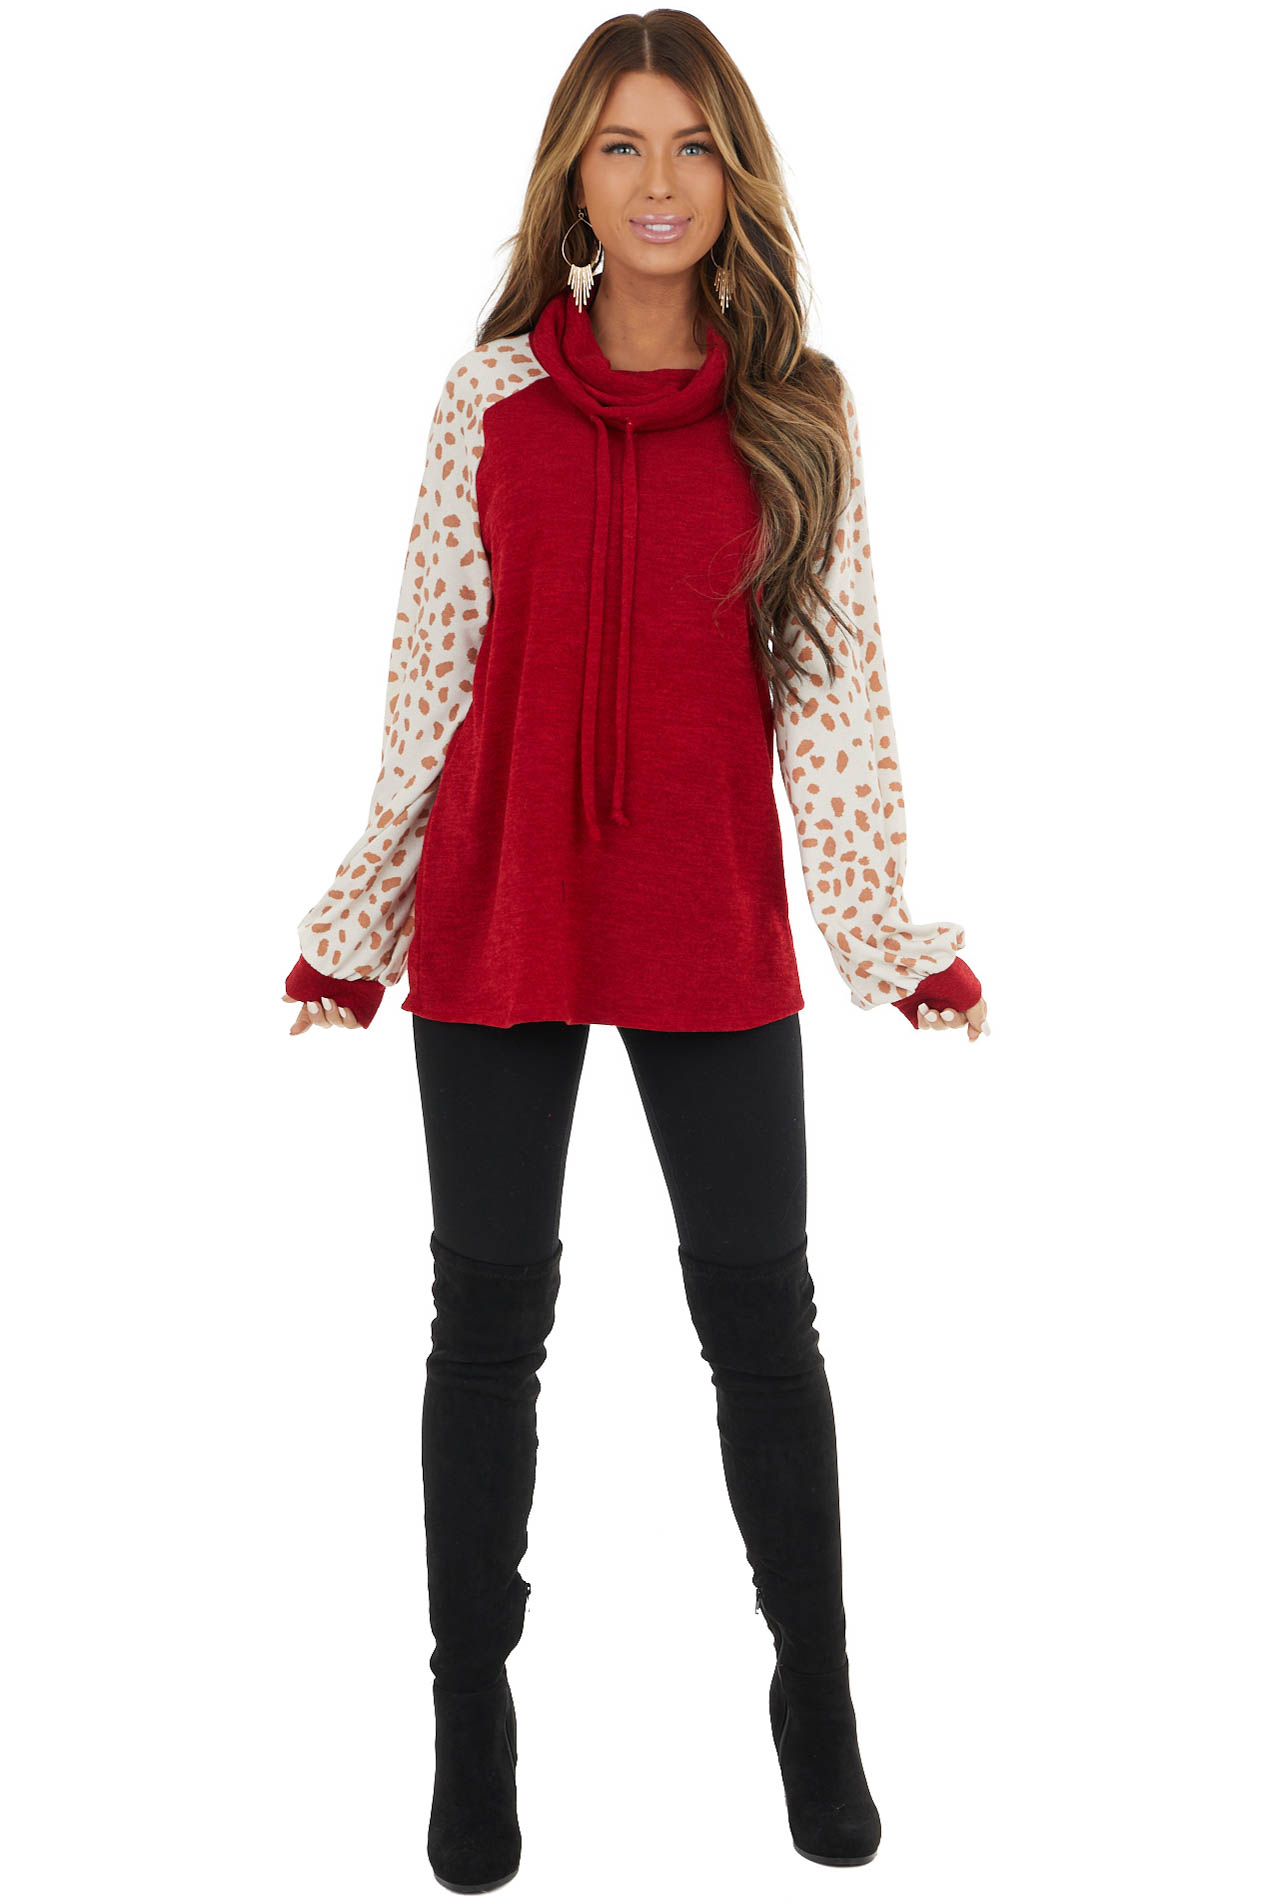 Cherry Drawstring Cowl Neck Top with Cheetah Print Sleeves